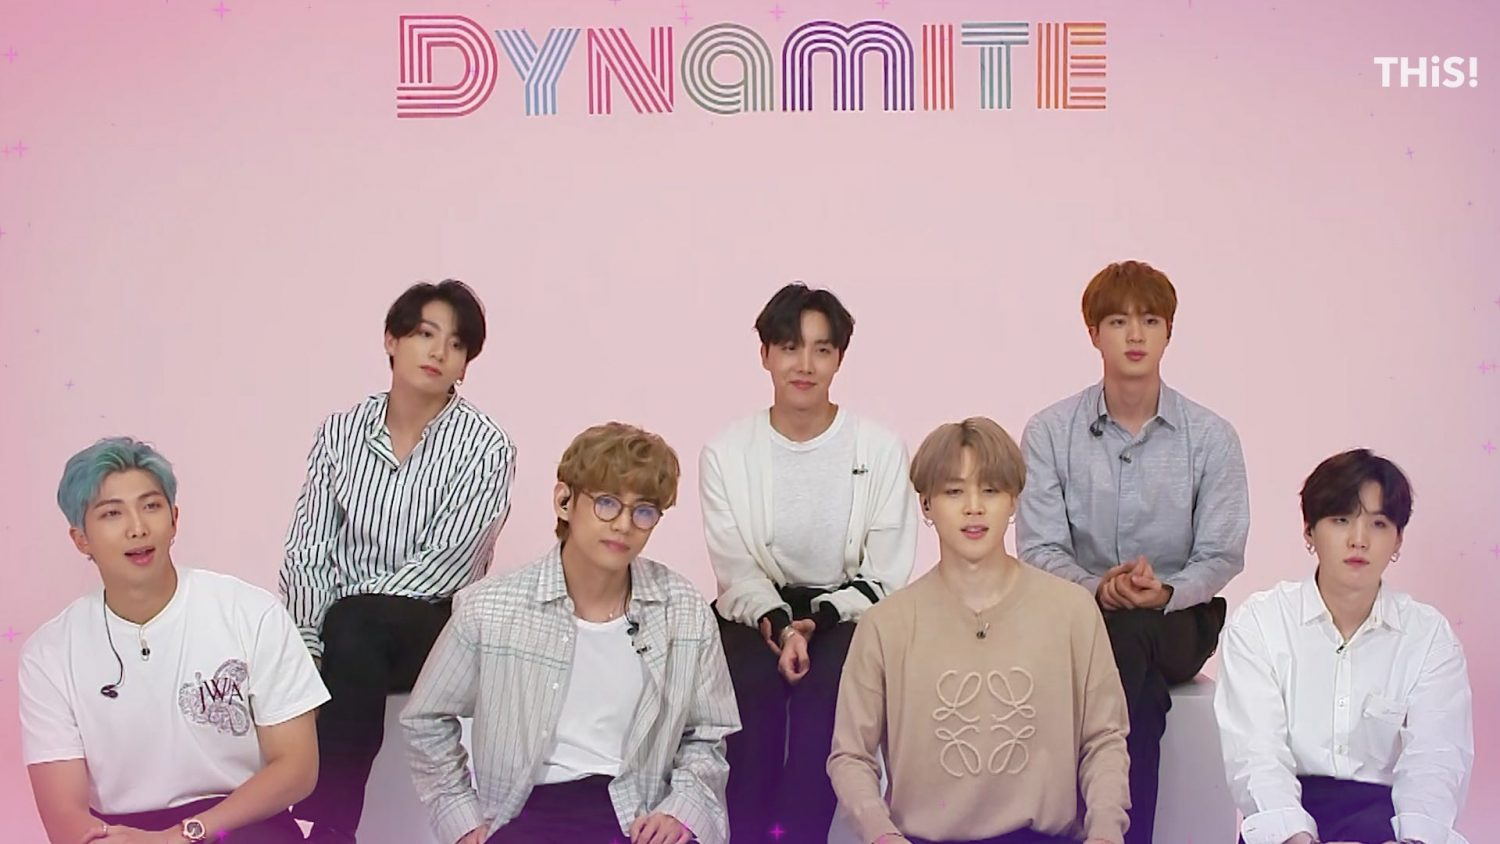 BTS Opens up About 'Dynamite' Achieving No.1 Status and Thank Fans